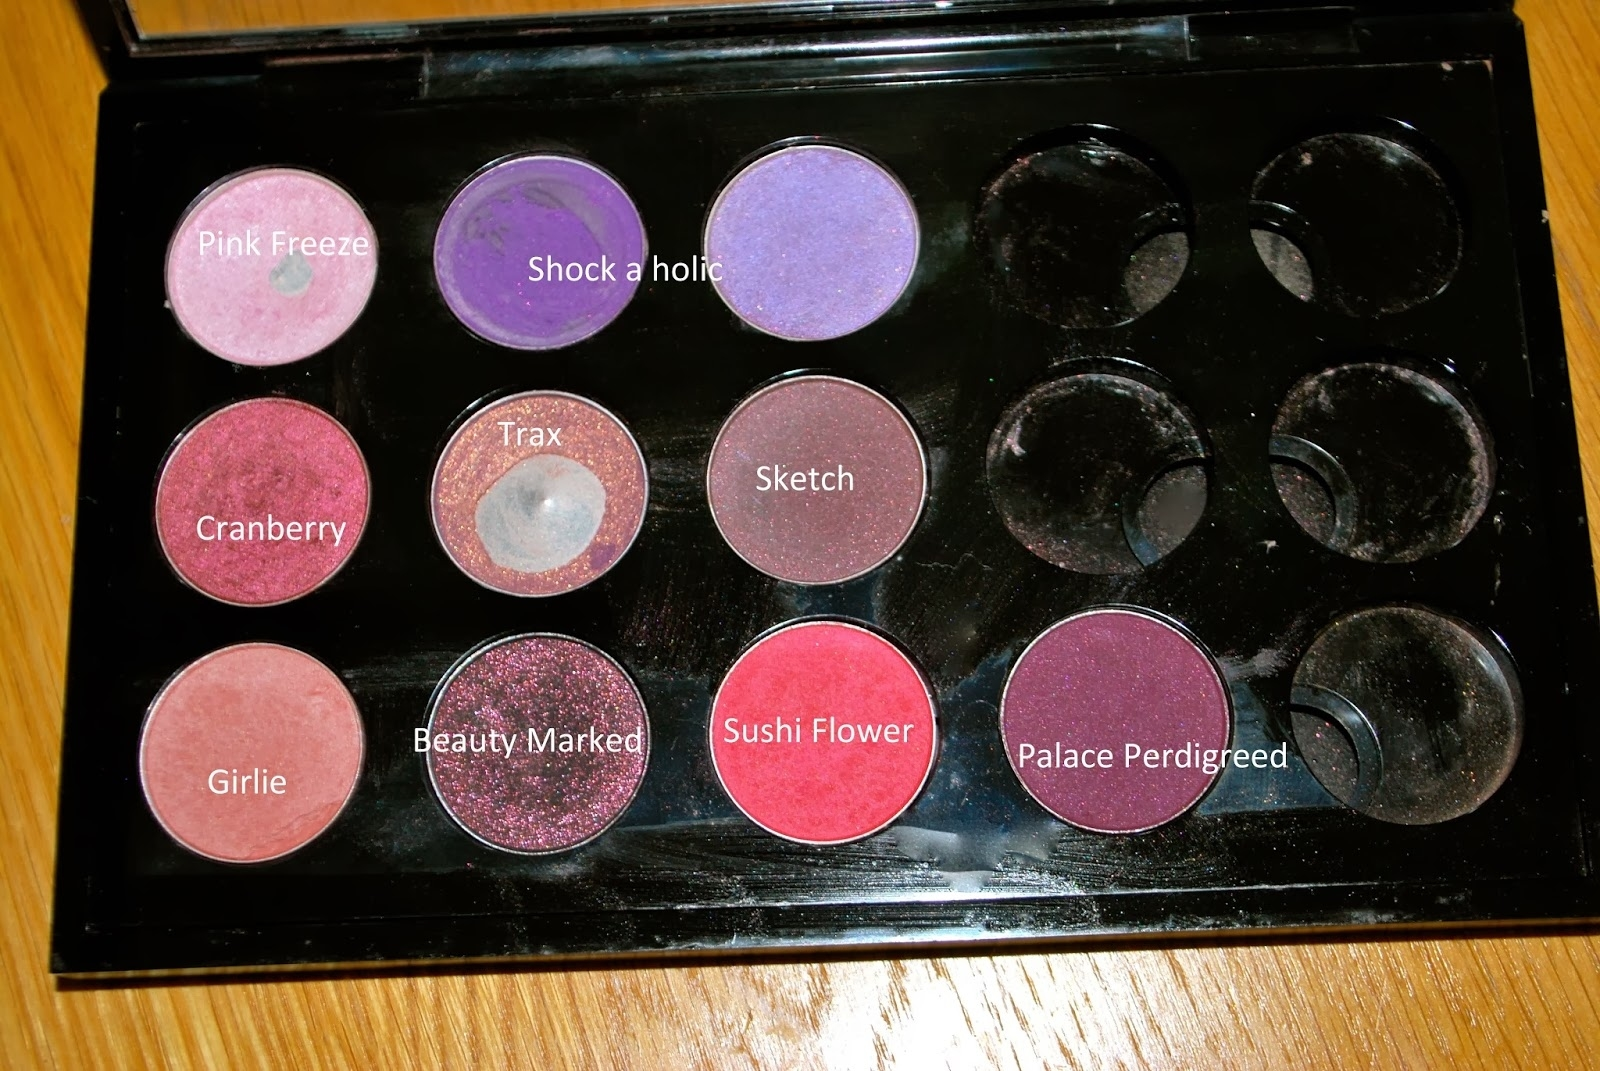 My Top Mac Eyeshadows - The Beautiful Truth within Best Mac Eyeshadows For Blue Eyes